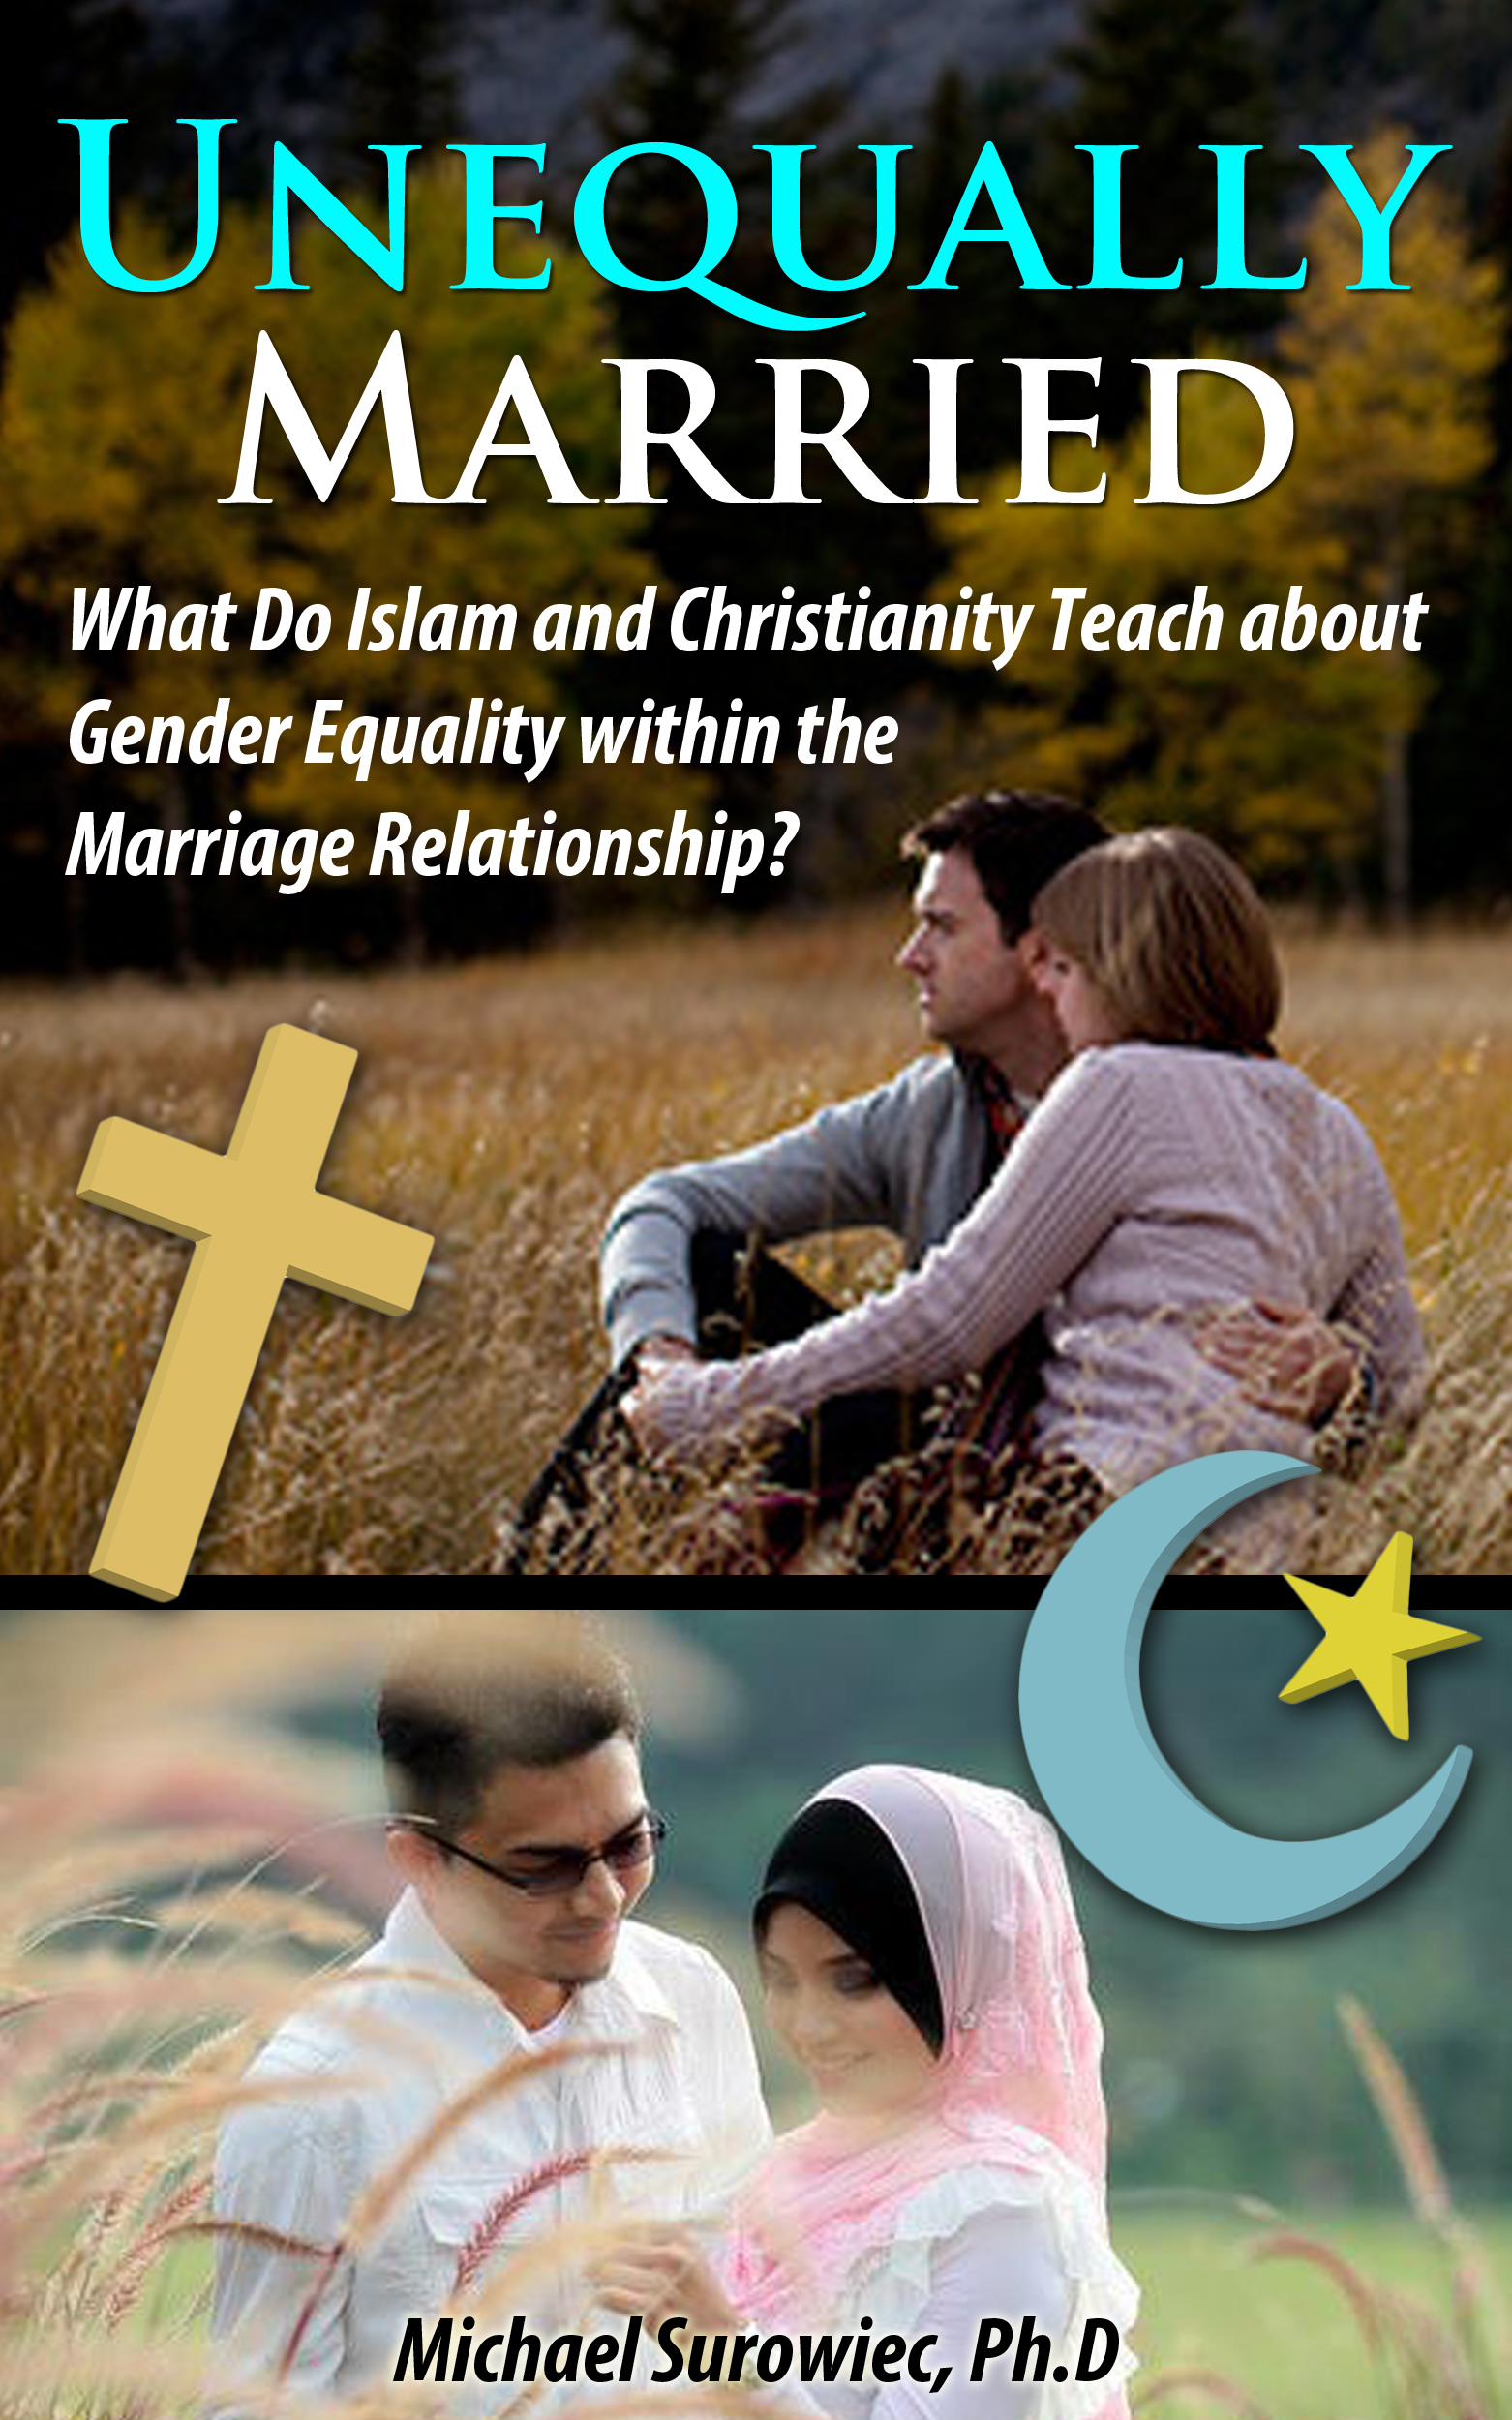 gender equality in islam and christianity essay Islam/arab culture effectively created a patriarchal society in place of the traditional matriarchal one this was a hugely powerful change—effectively reversing gender dynamics that had been in place for centuries, with the introduction of a new religion.